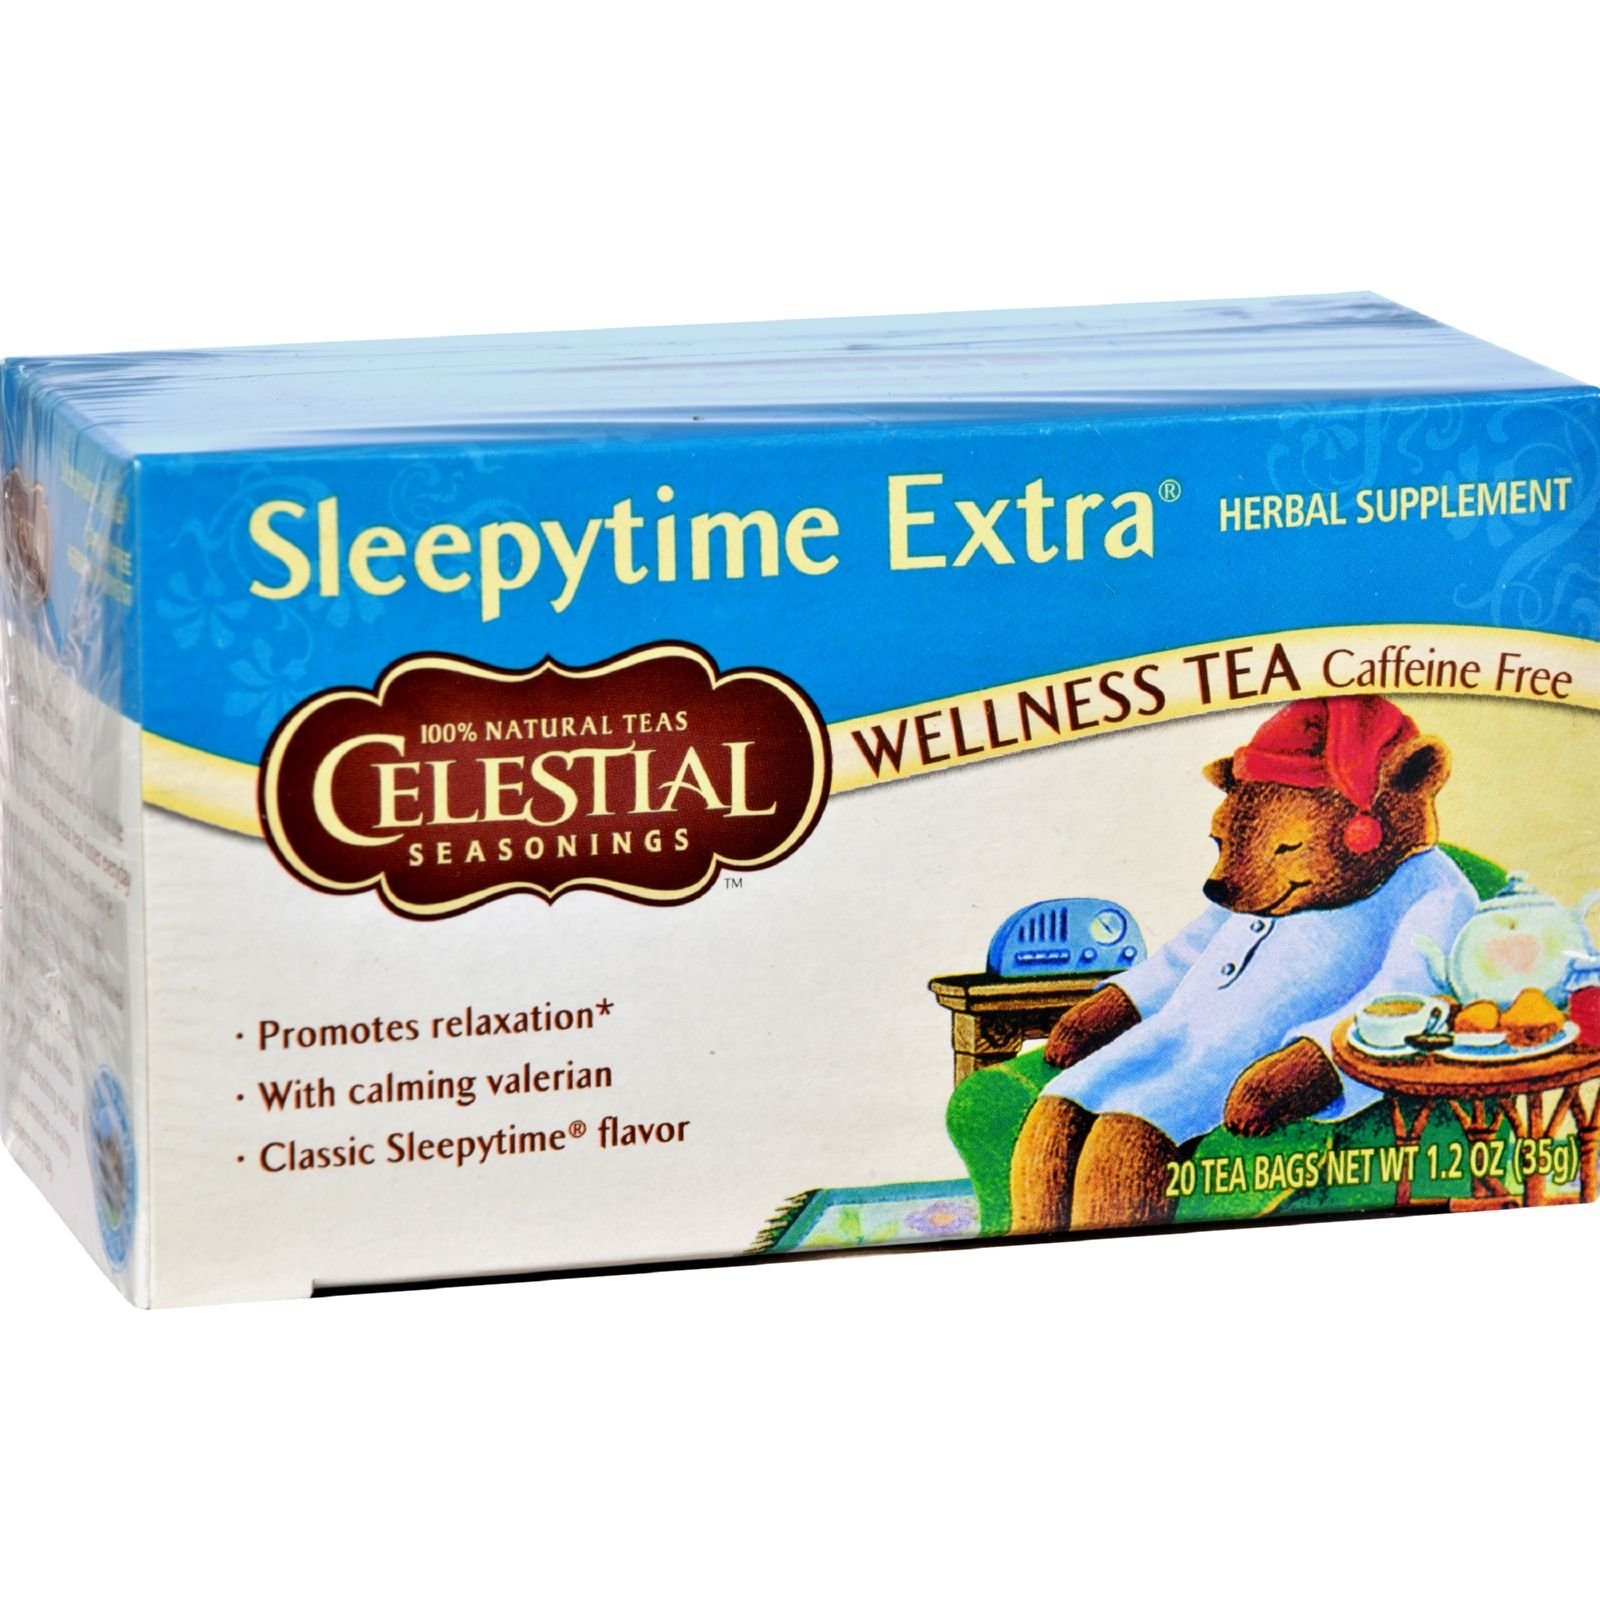 Celestial Seasonings Sleepytime Extra Tea Bags, 20 ct, 2 pk